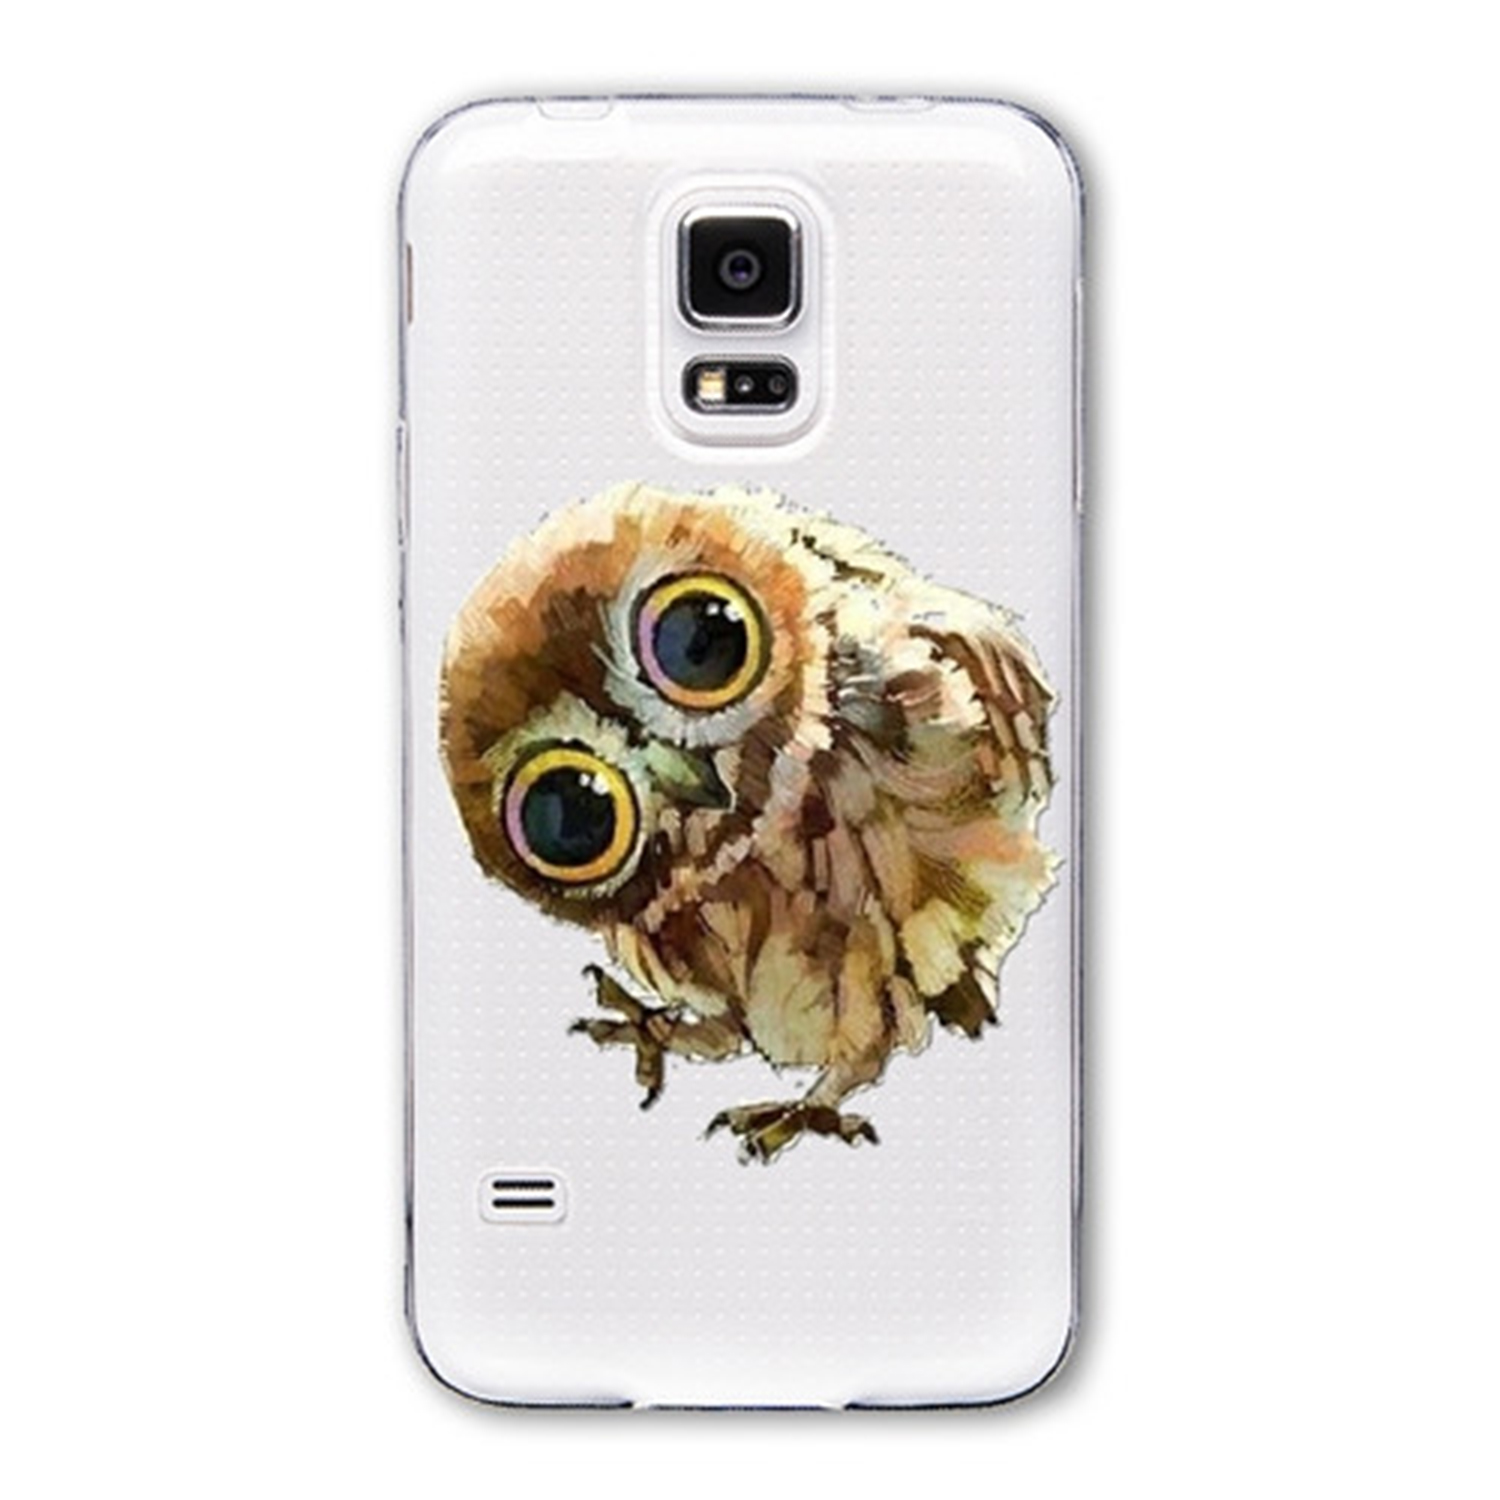 Kritzel Case Collection Galaxy S5 - Mod. #495